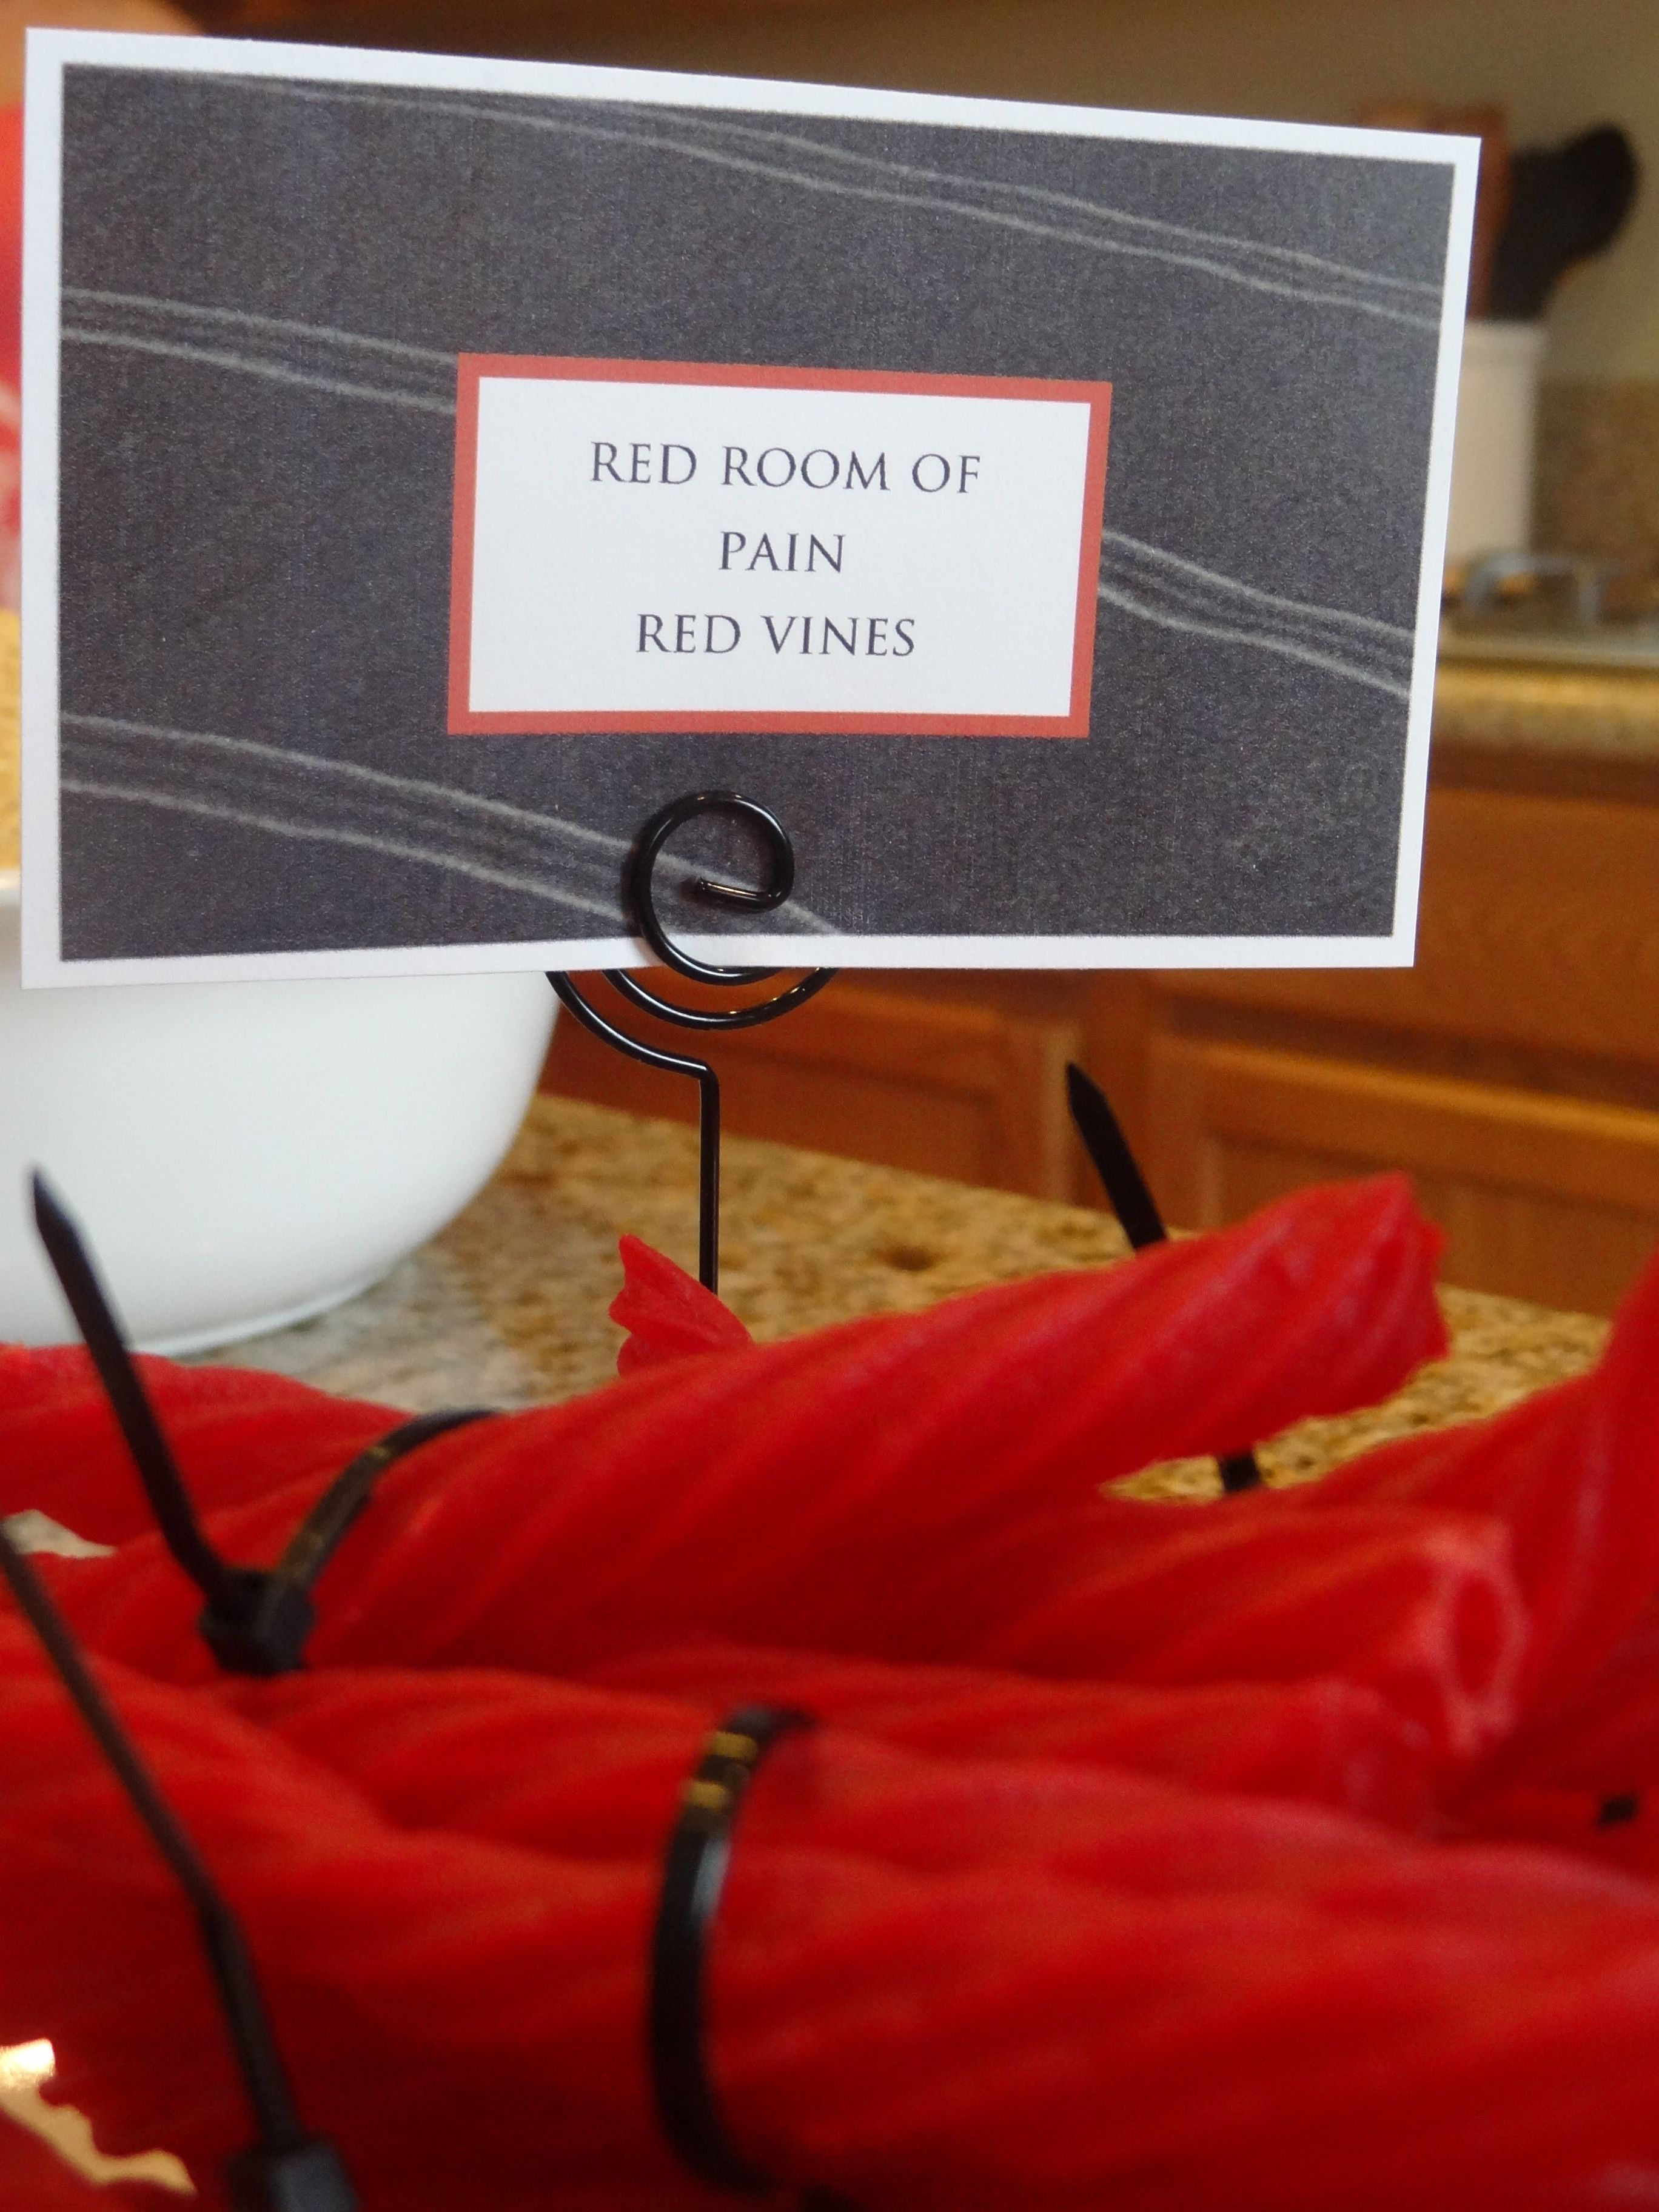 Fifty Shades Of Grey Themed Party Red Room Of Pain Red Vines Fastened With Black Zip Ties